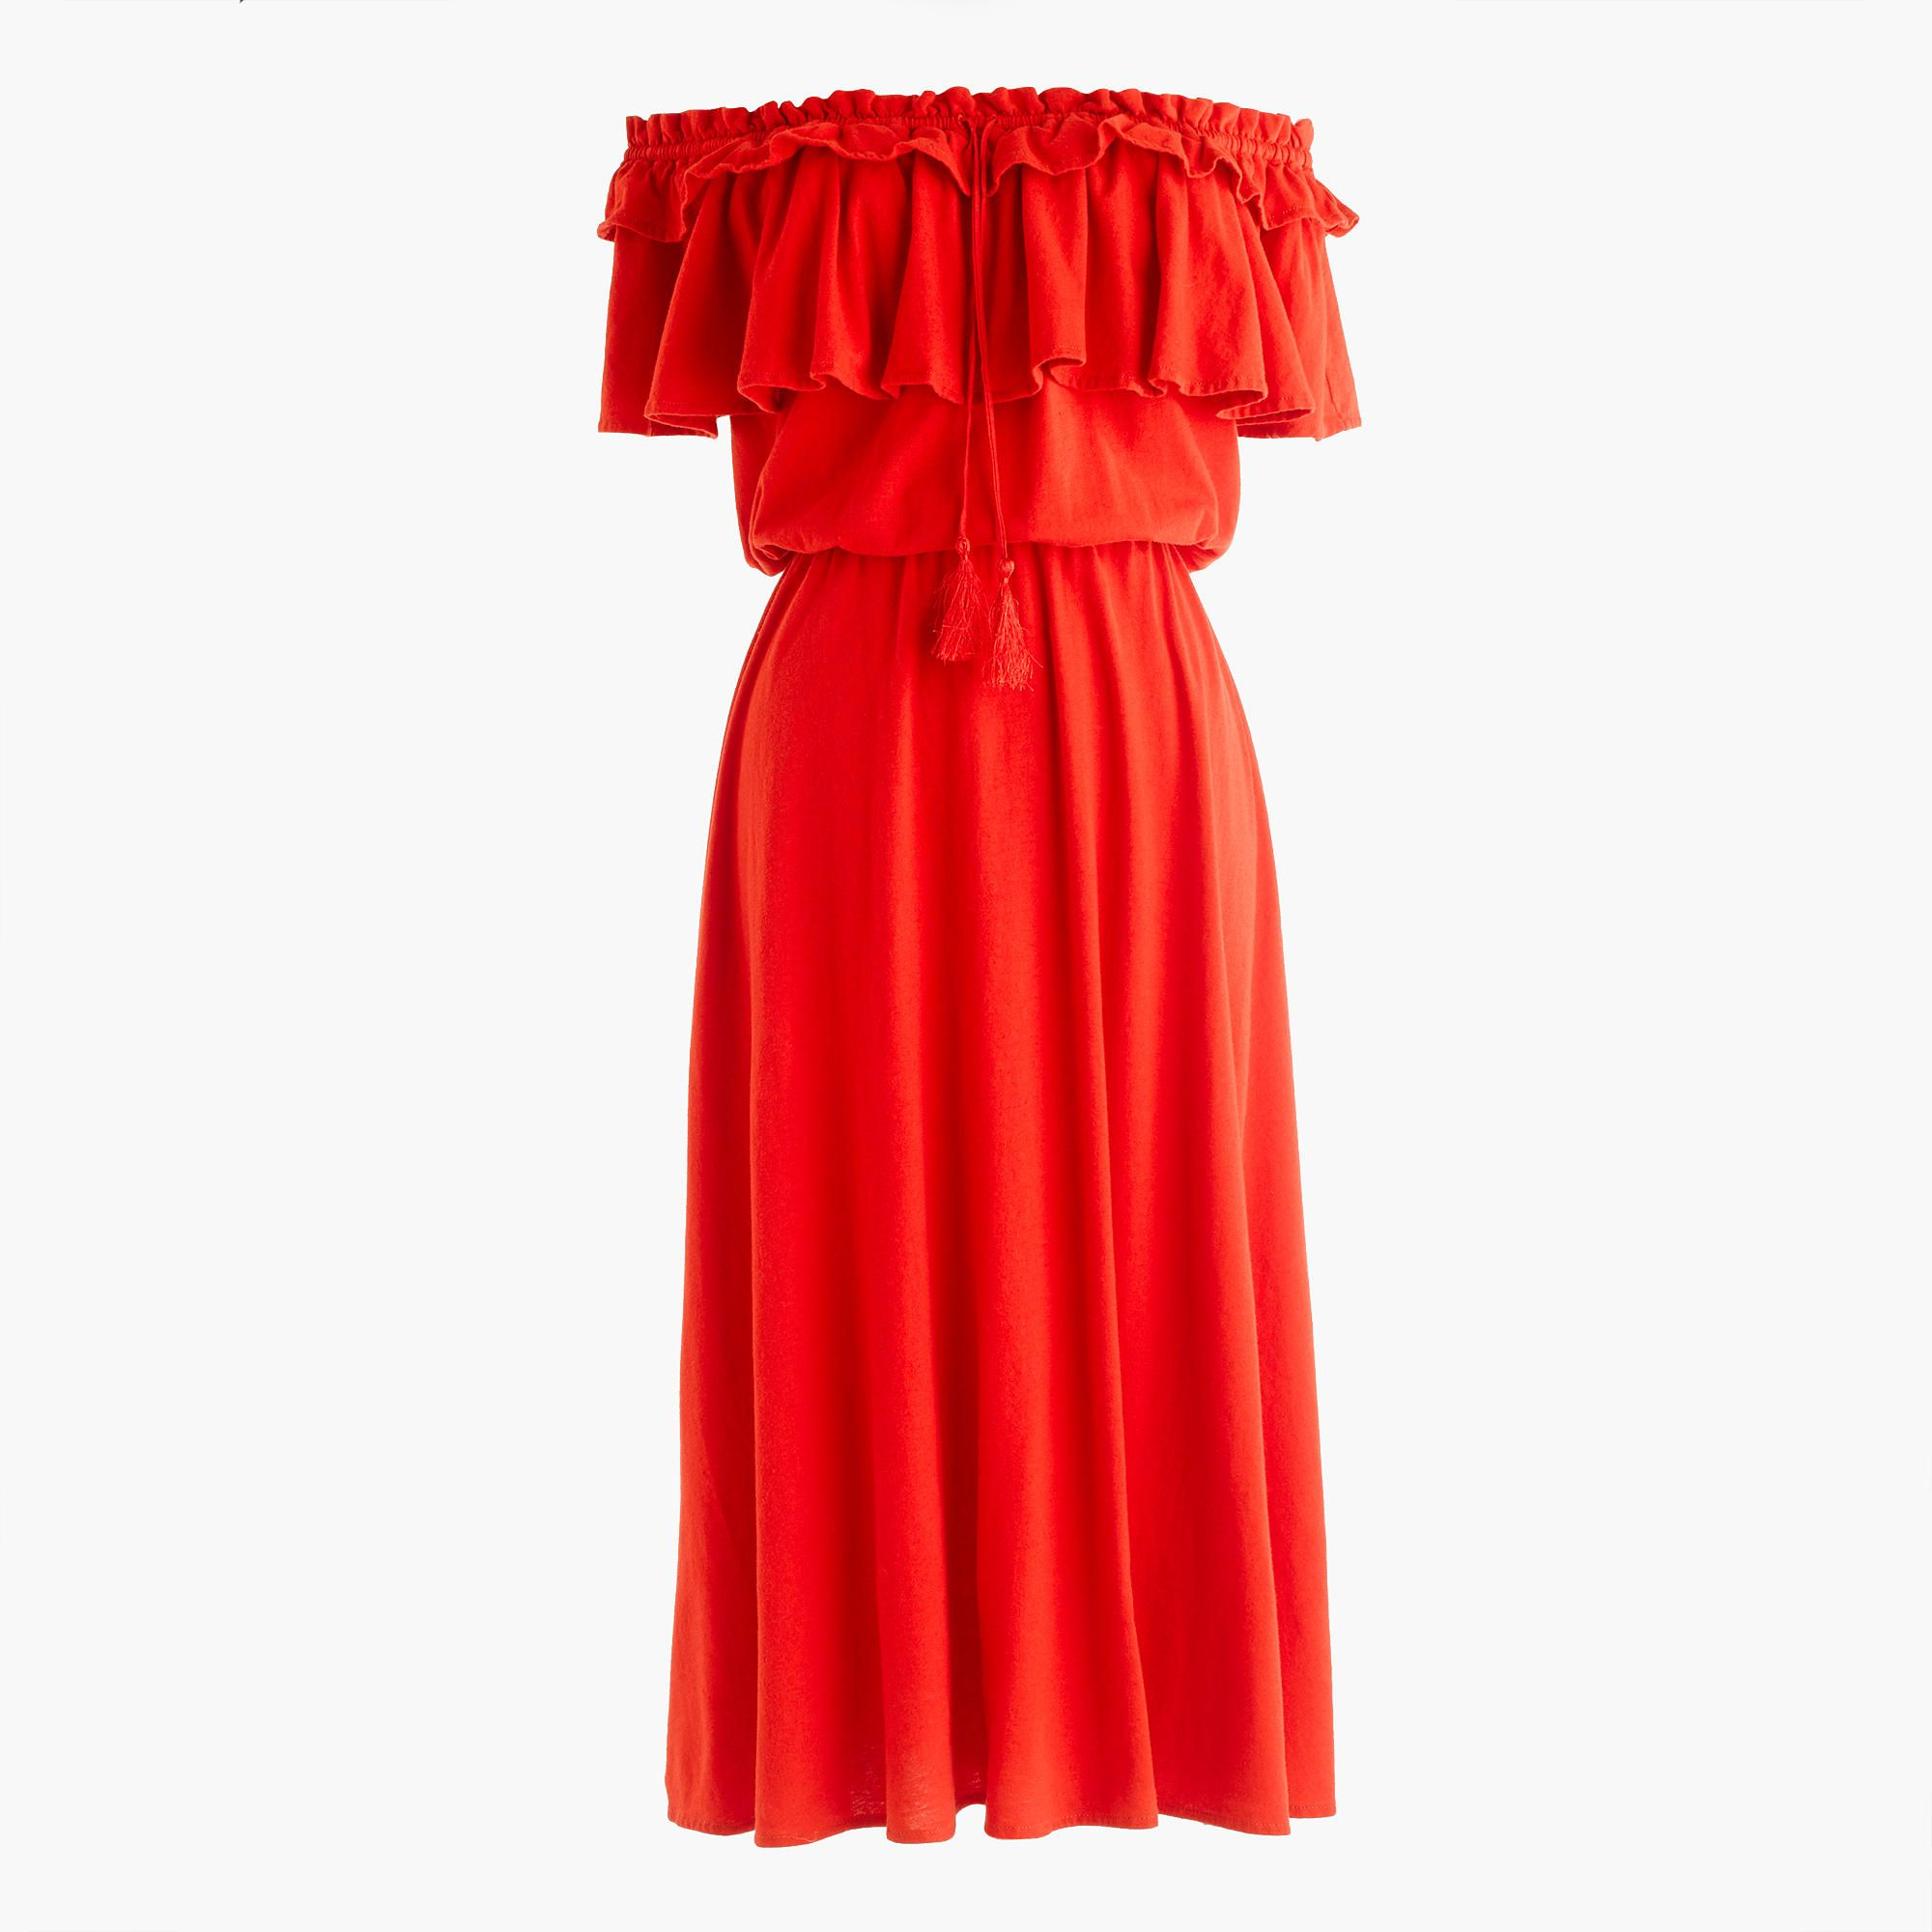 327a4fc7fd30 J.Crew - Off-the-shoulder ruffle dress